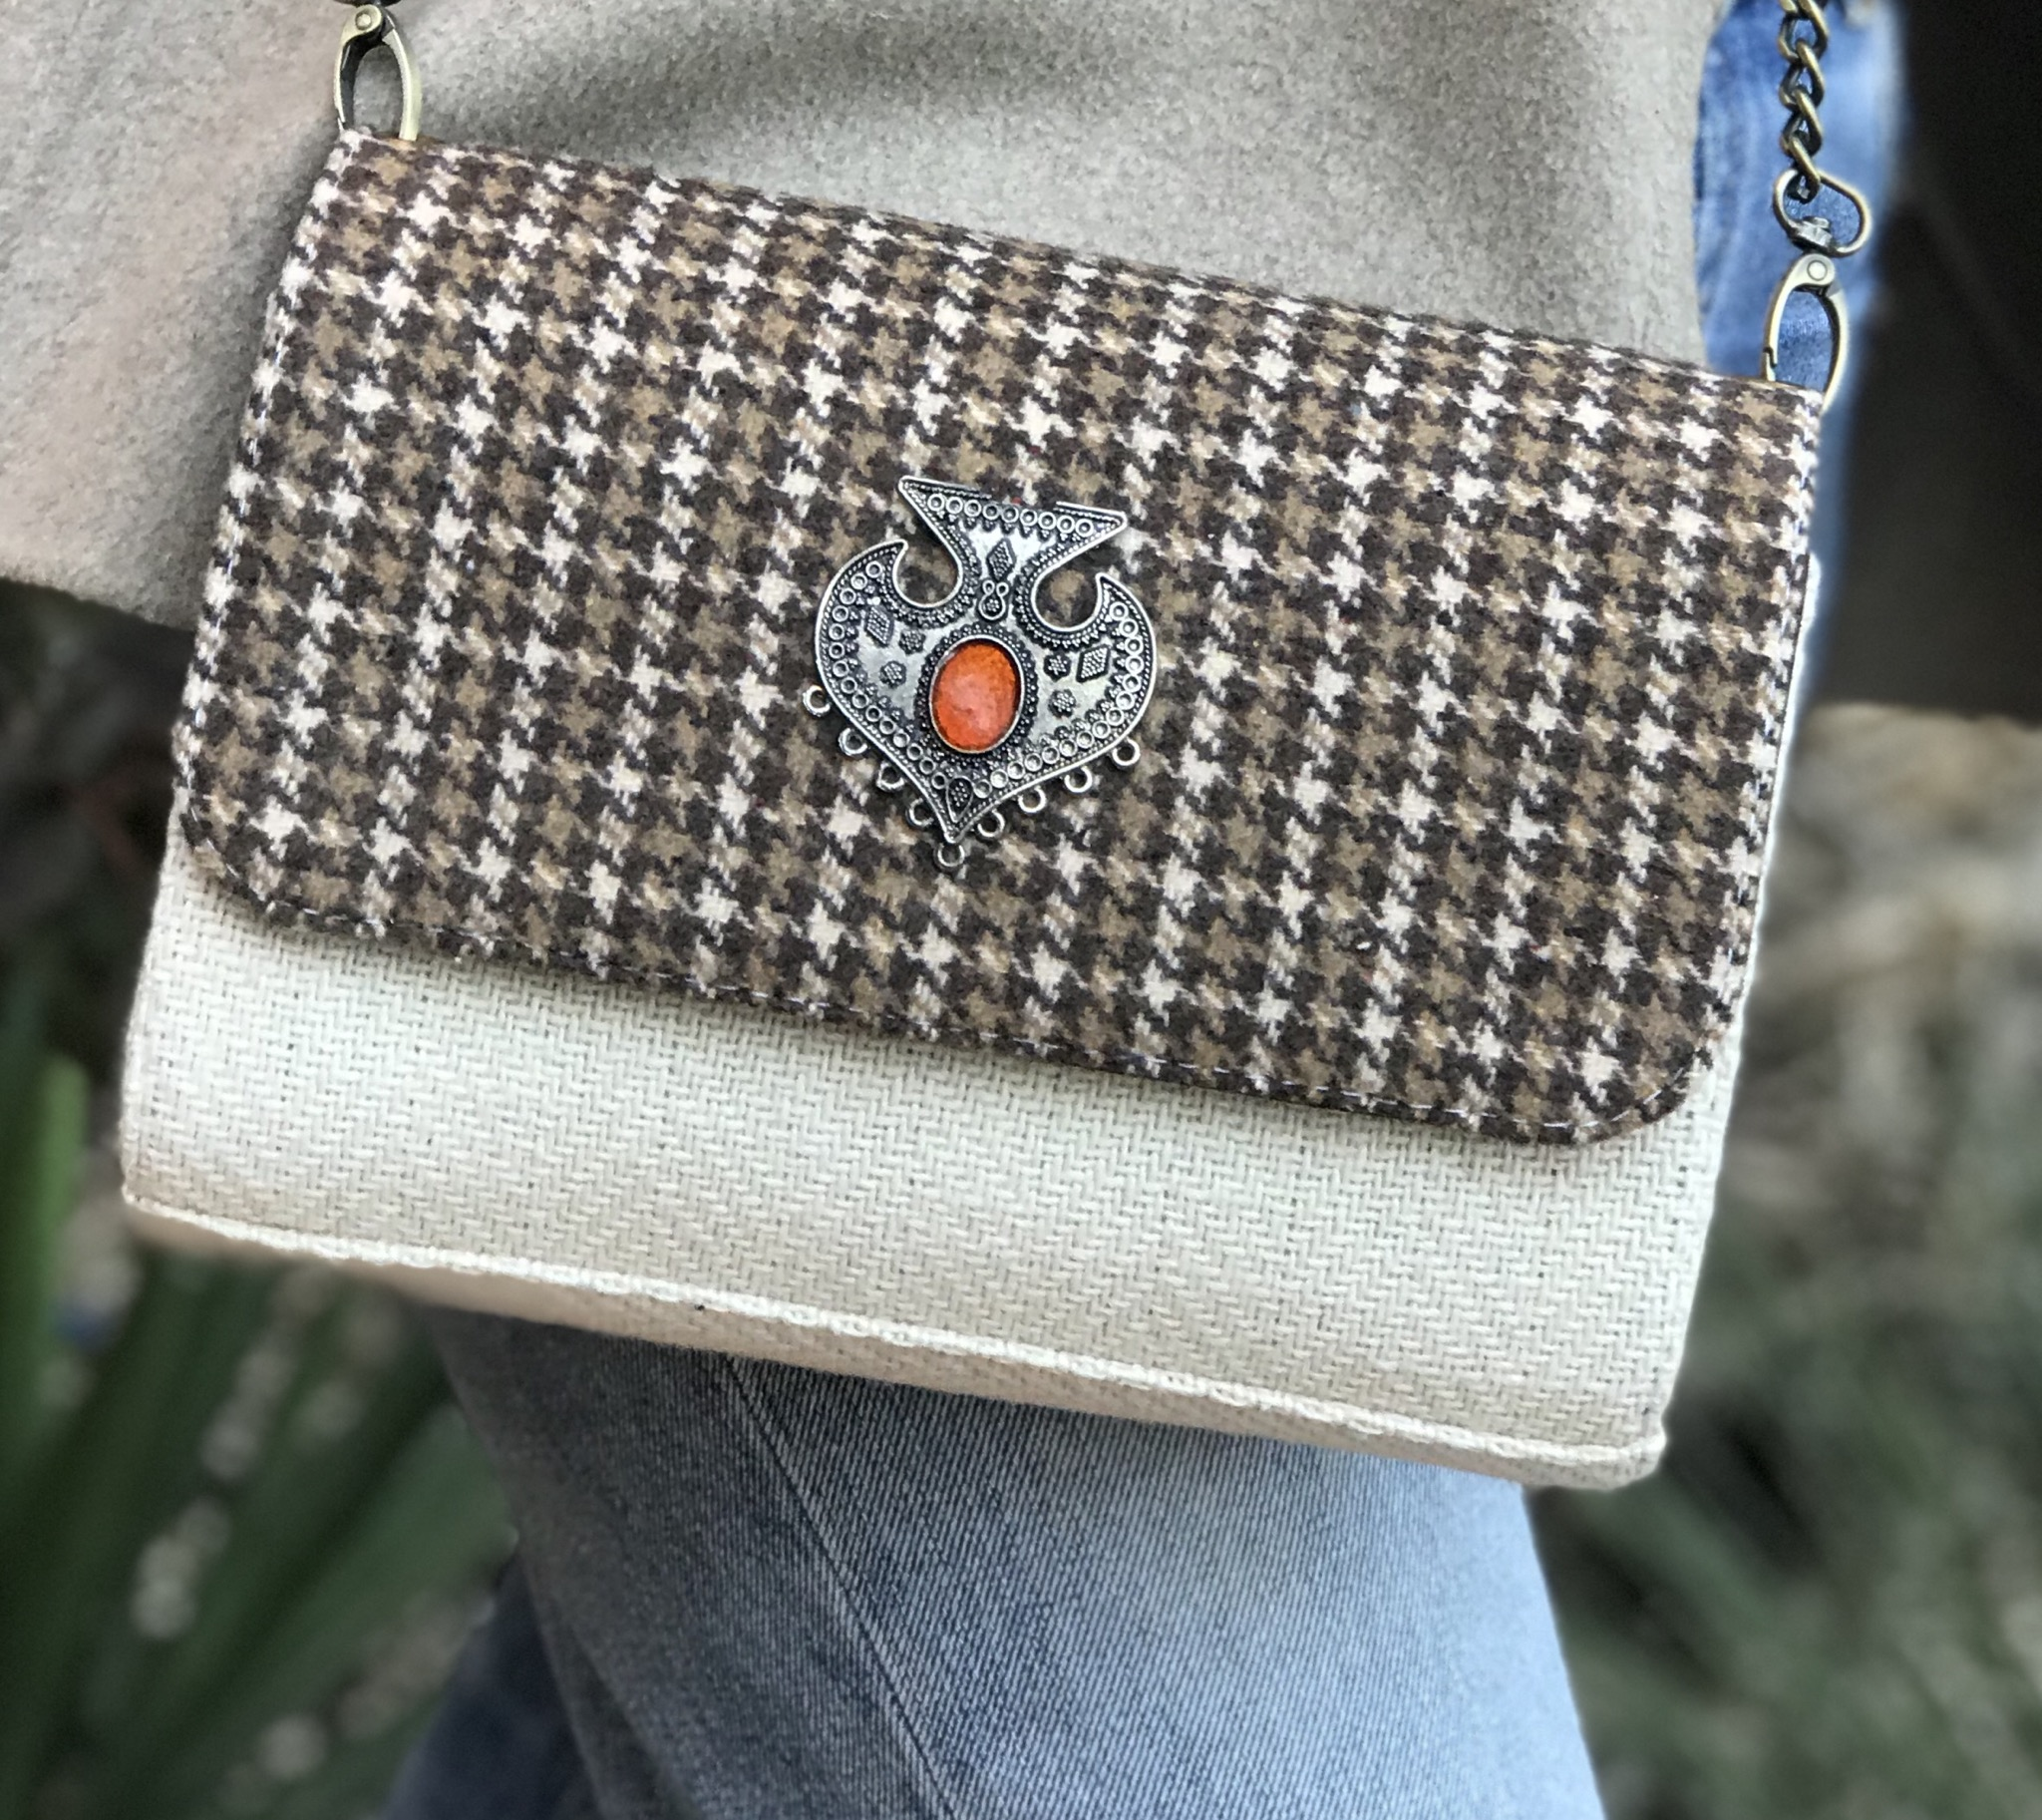 Bag tweed brown beige with artisanal jewelry